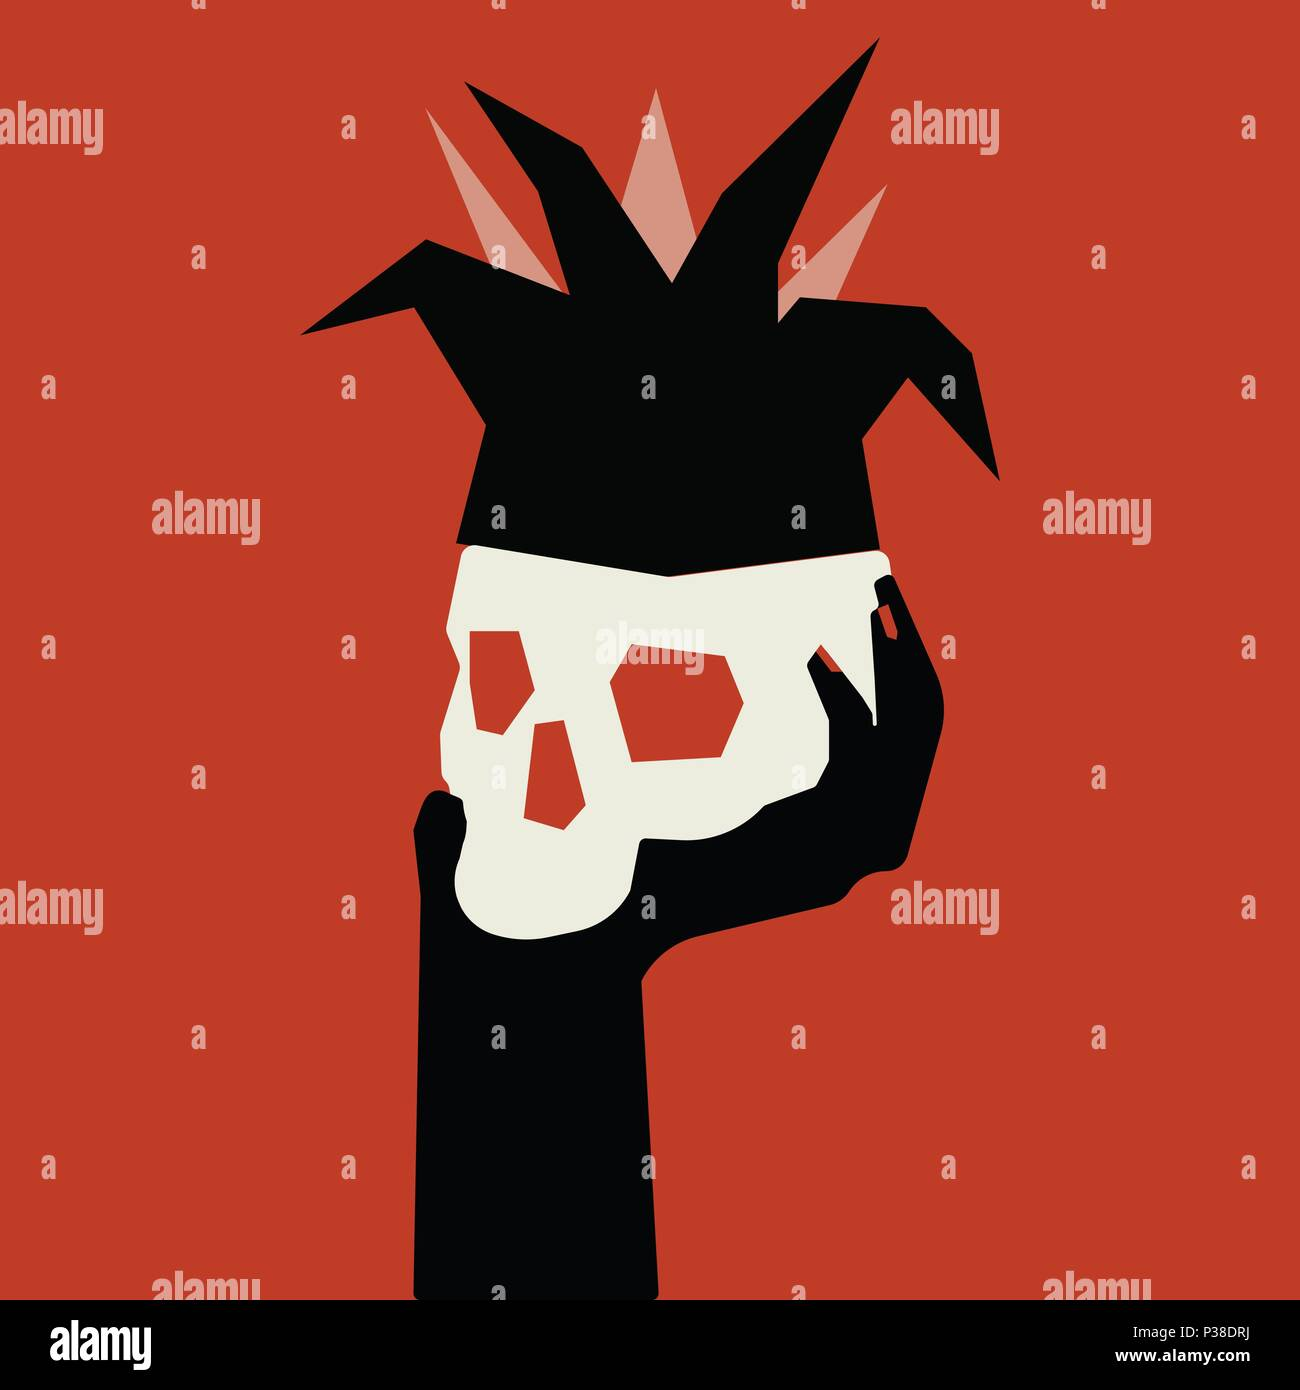 Skull in a clown hood on a woman s hand. Vector illustration on a bright red background. - Stock Vector